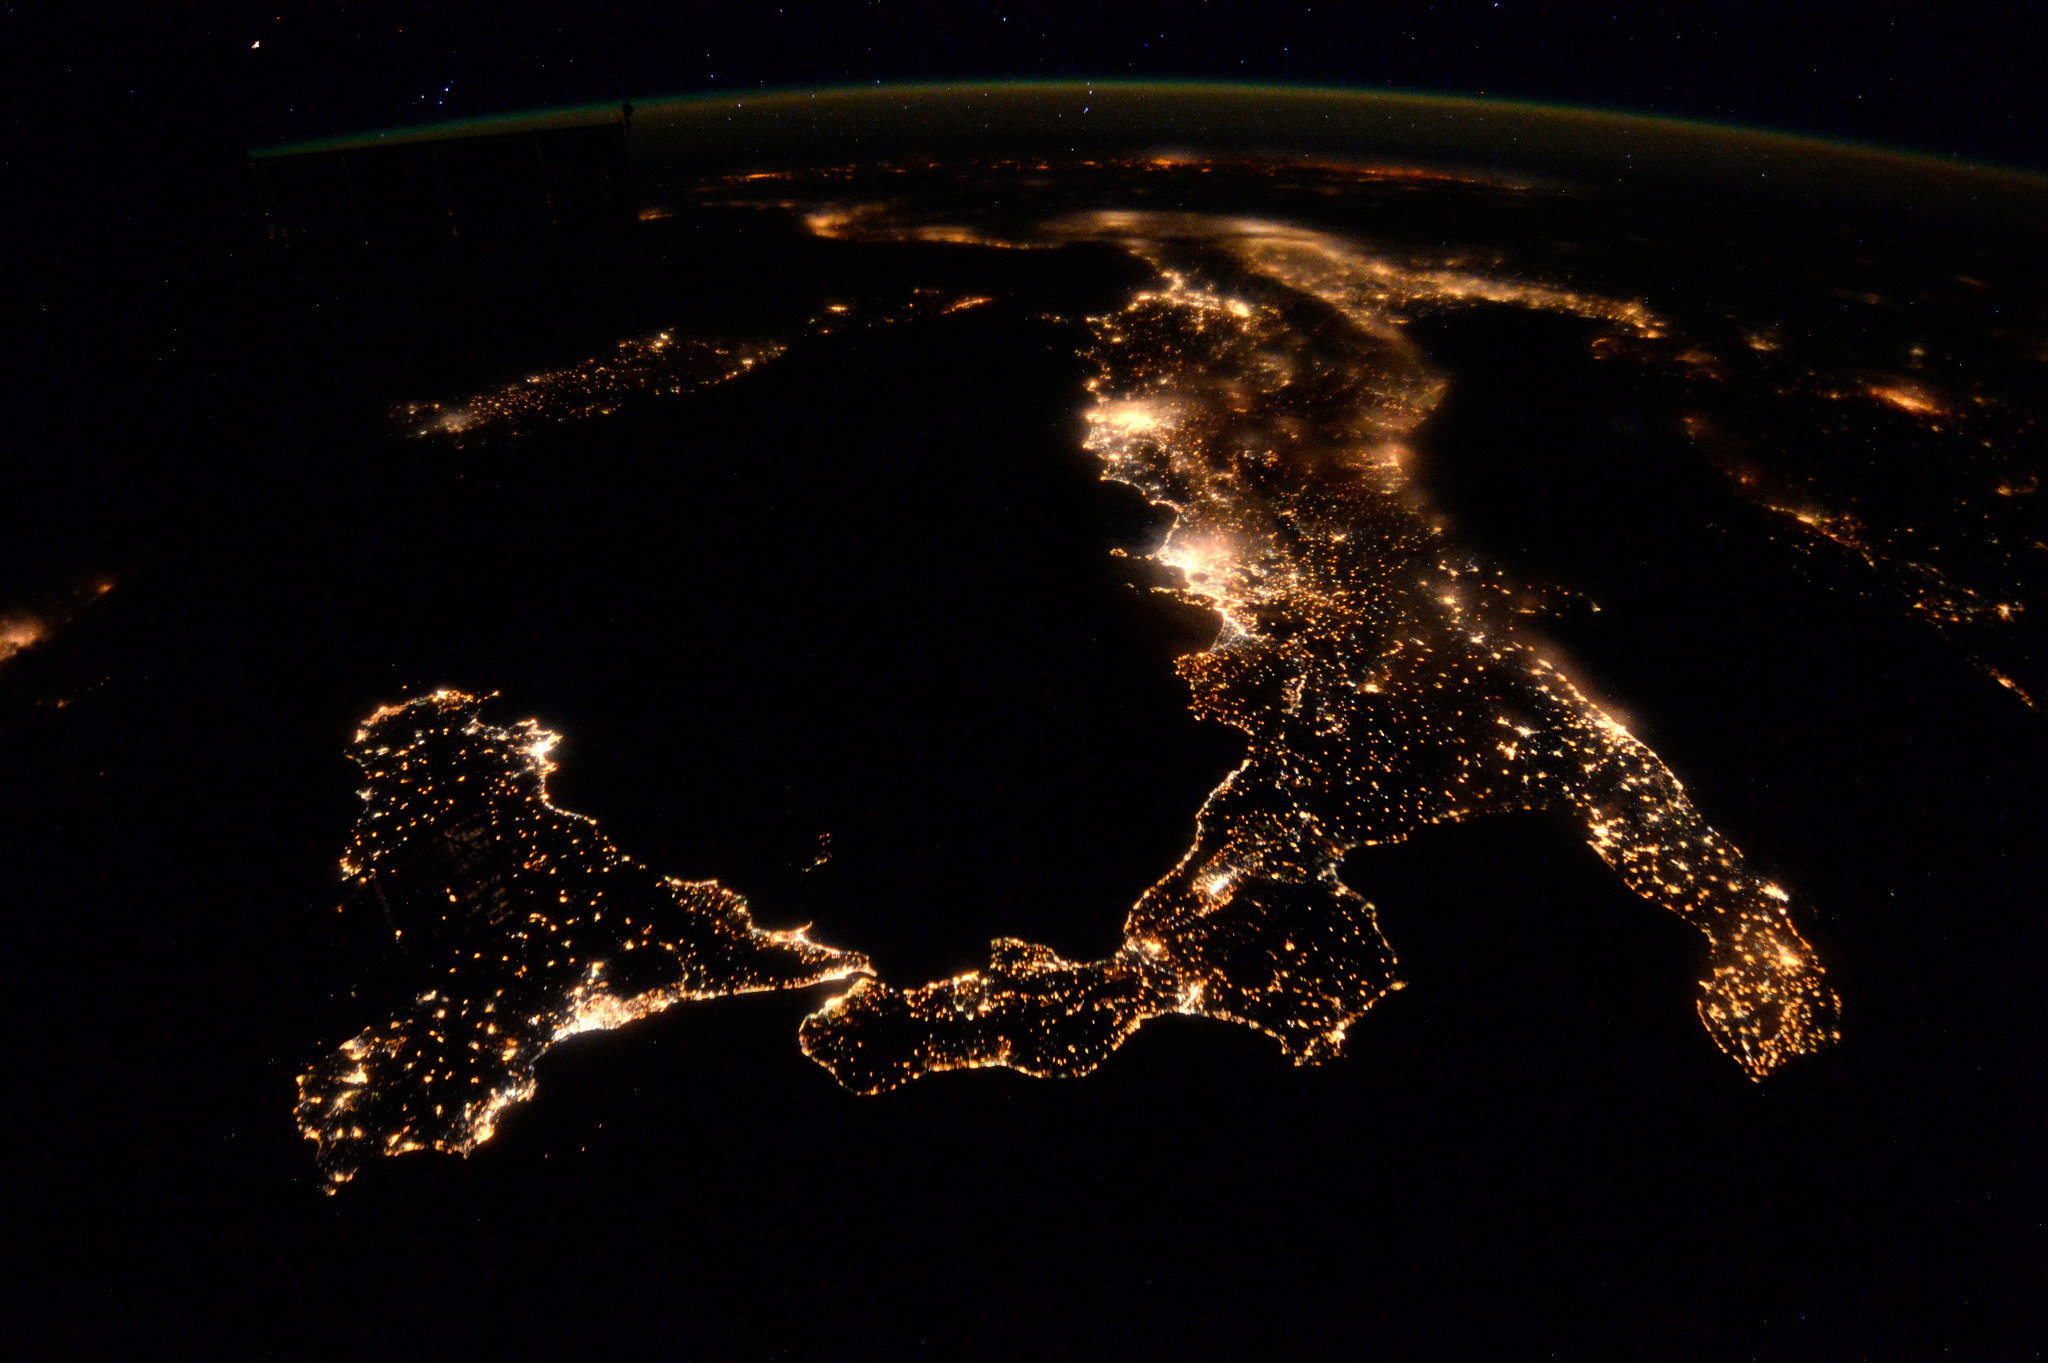 Italy at night (ESA/NASA Tim Peake, ISS, 5 aprile 2016)